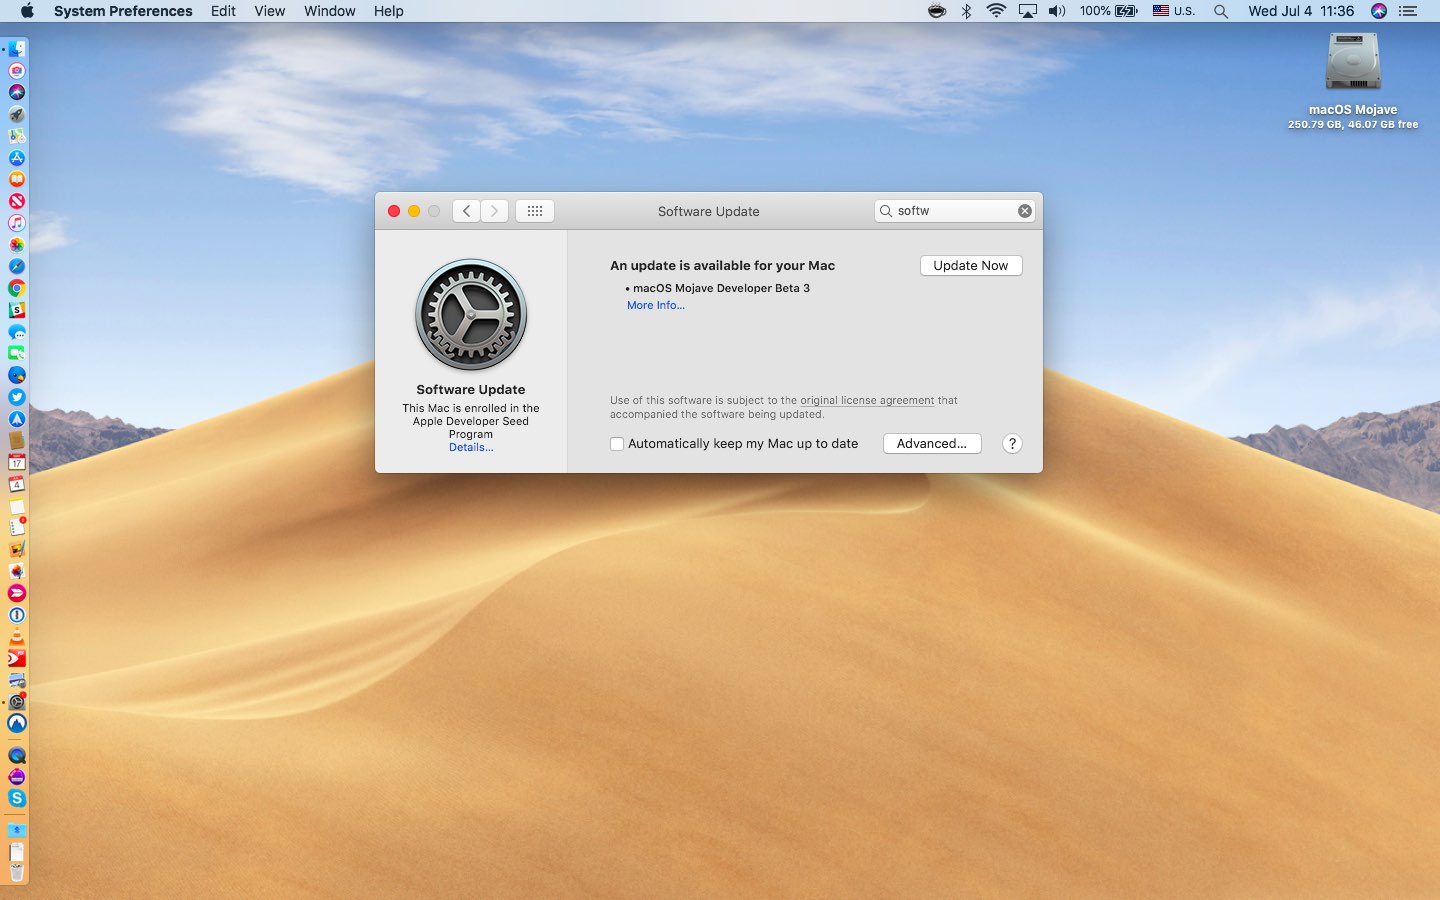 macOS Mojave: how to update the macOS software on your Mac